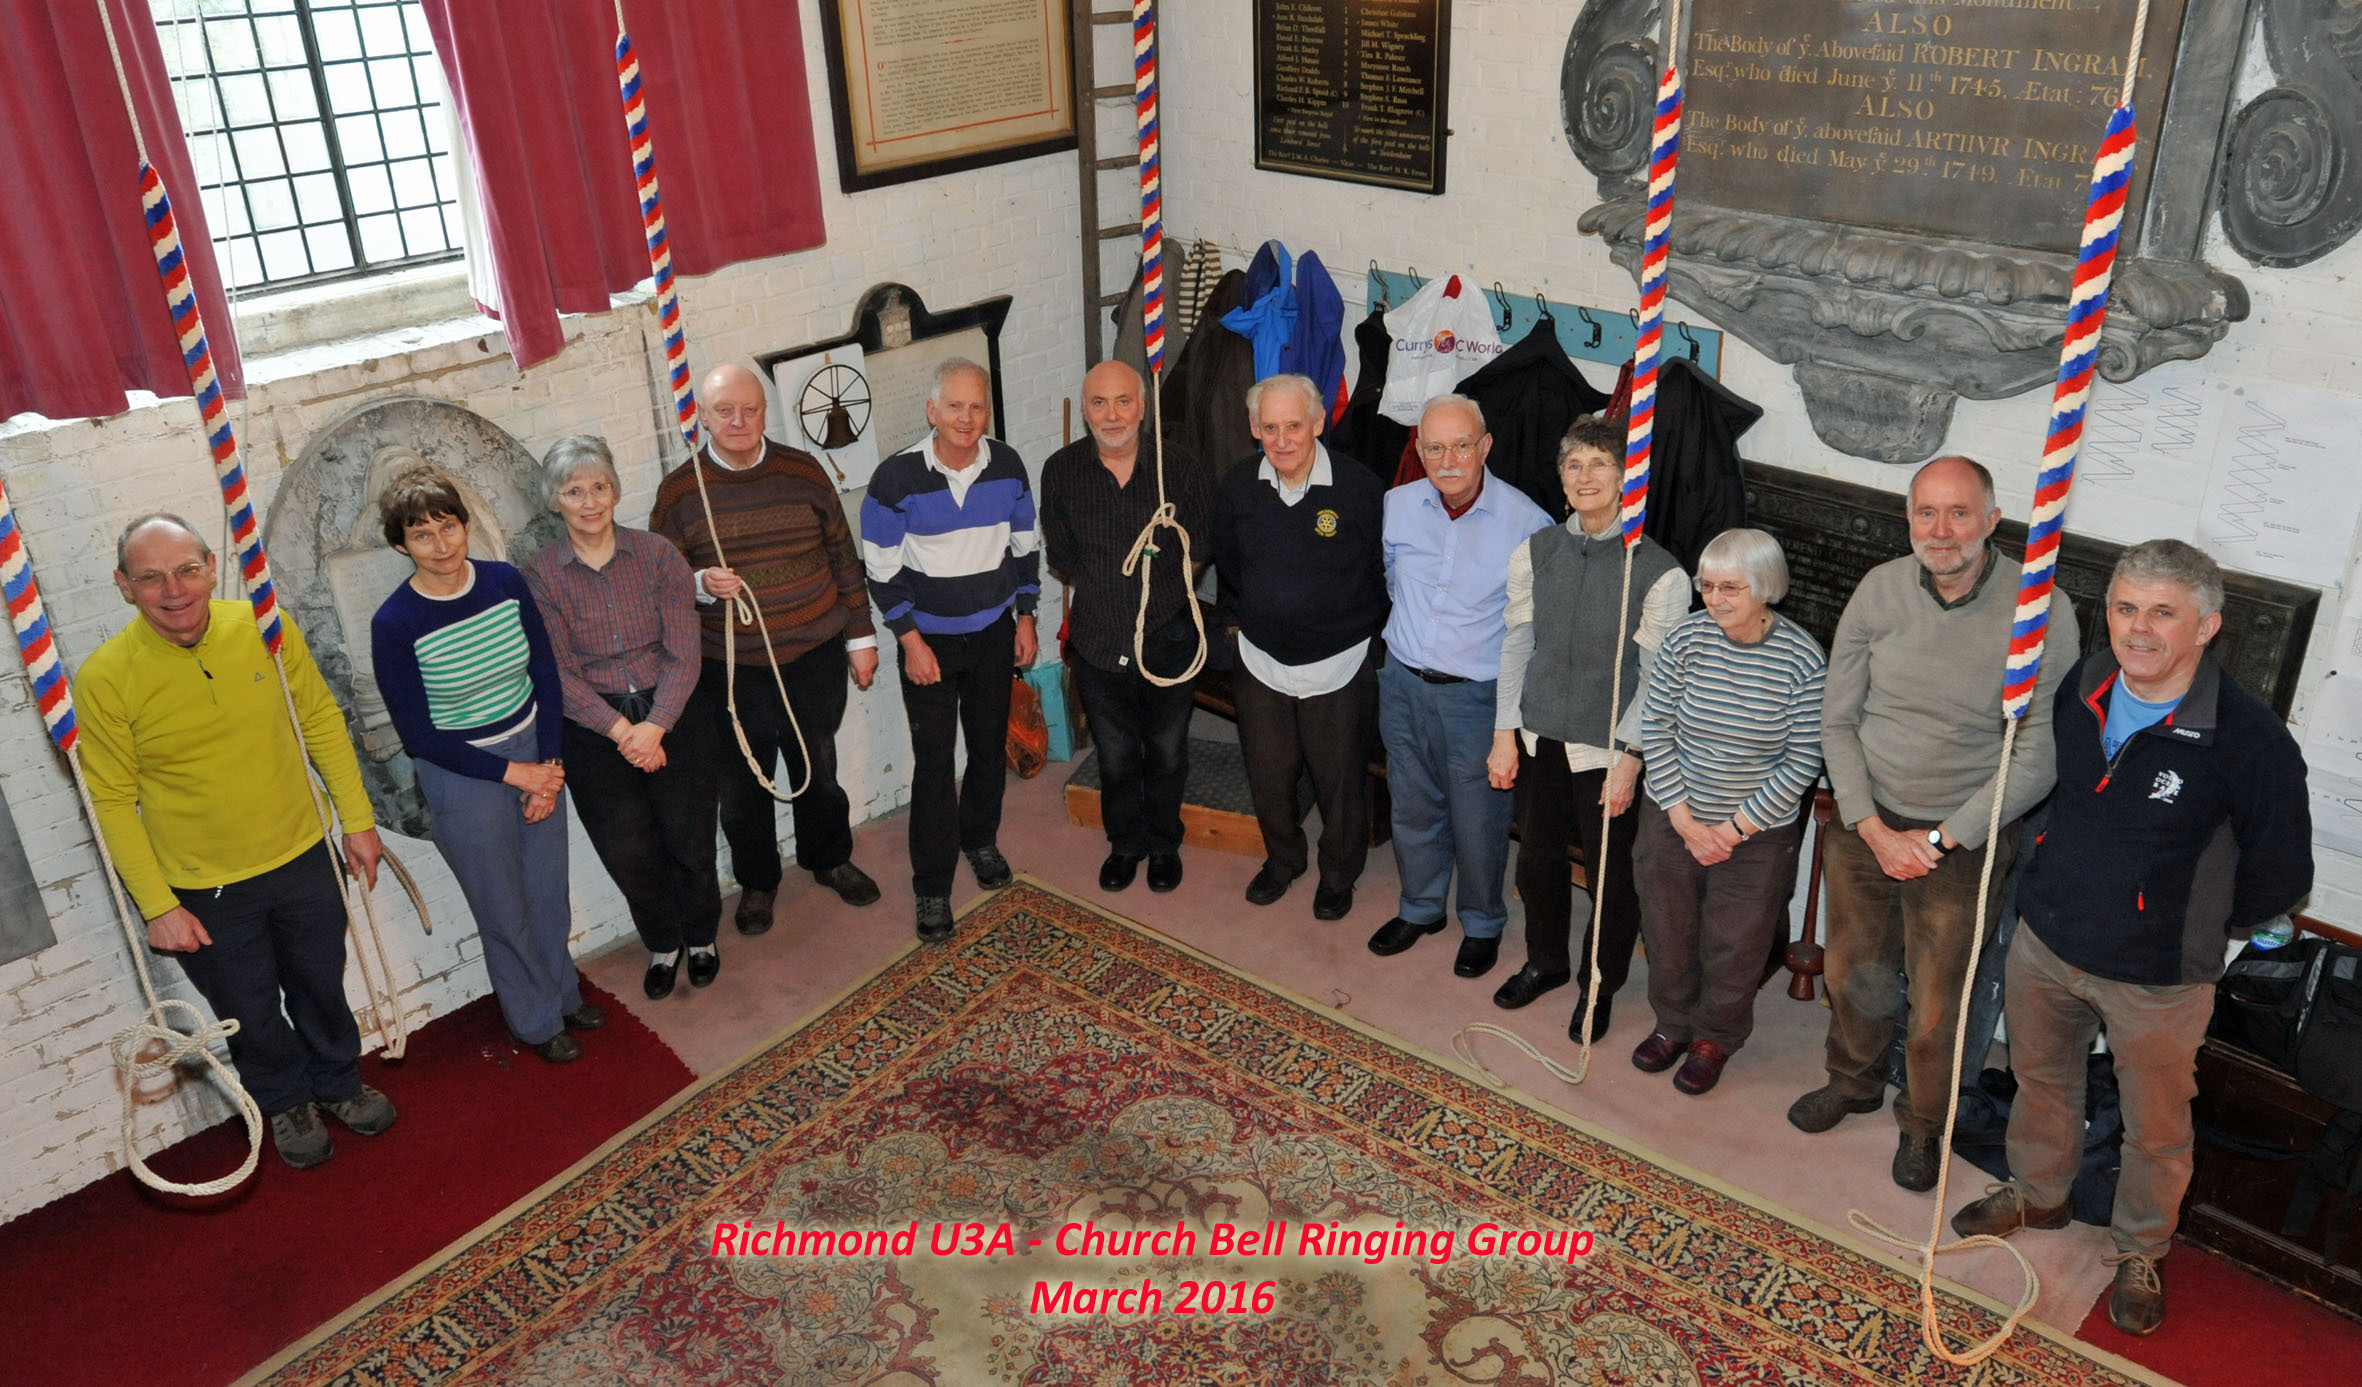 Church Bell Ringing Group - March 2016